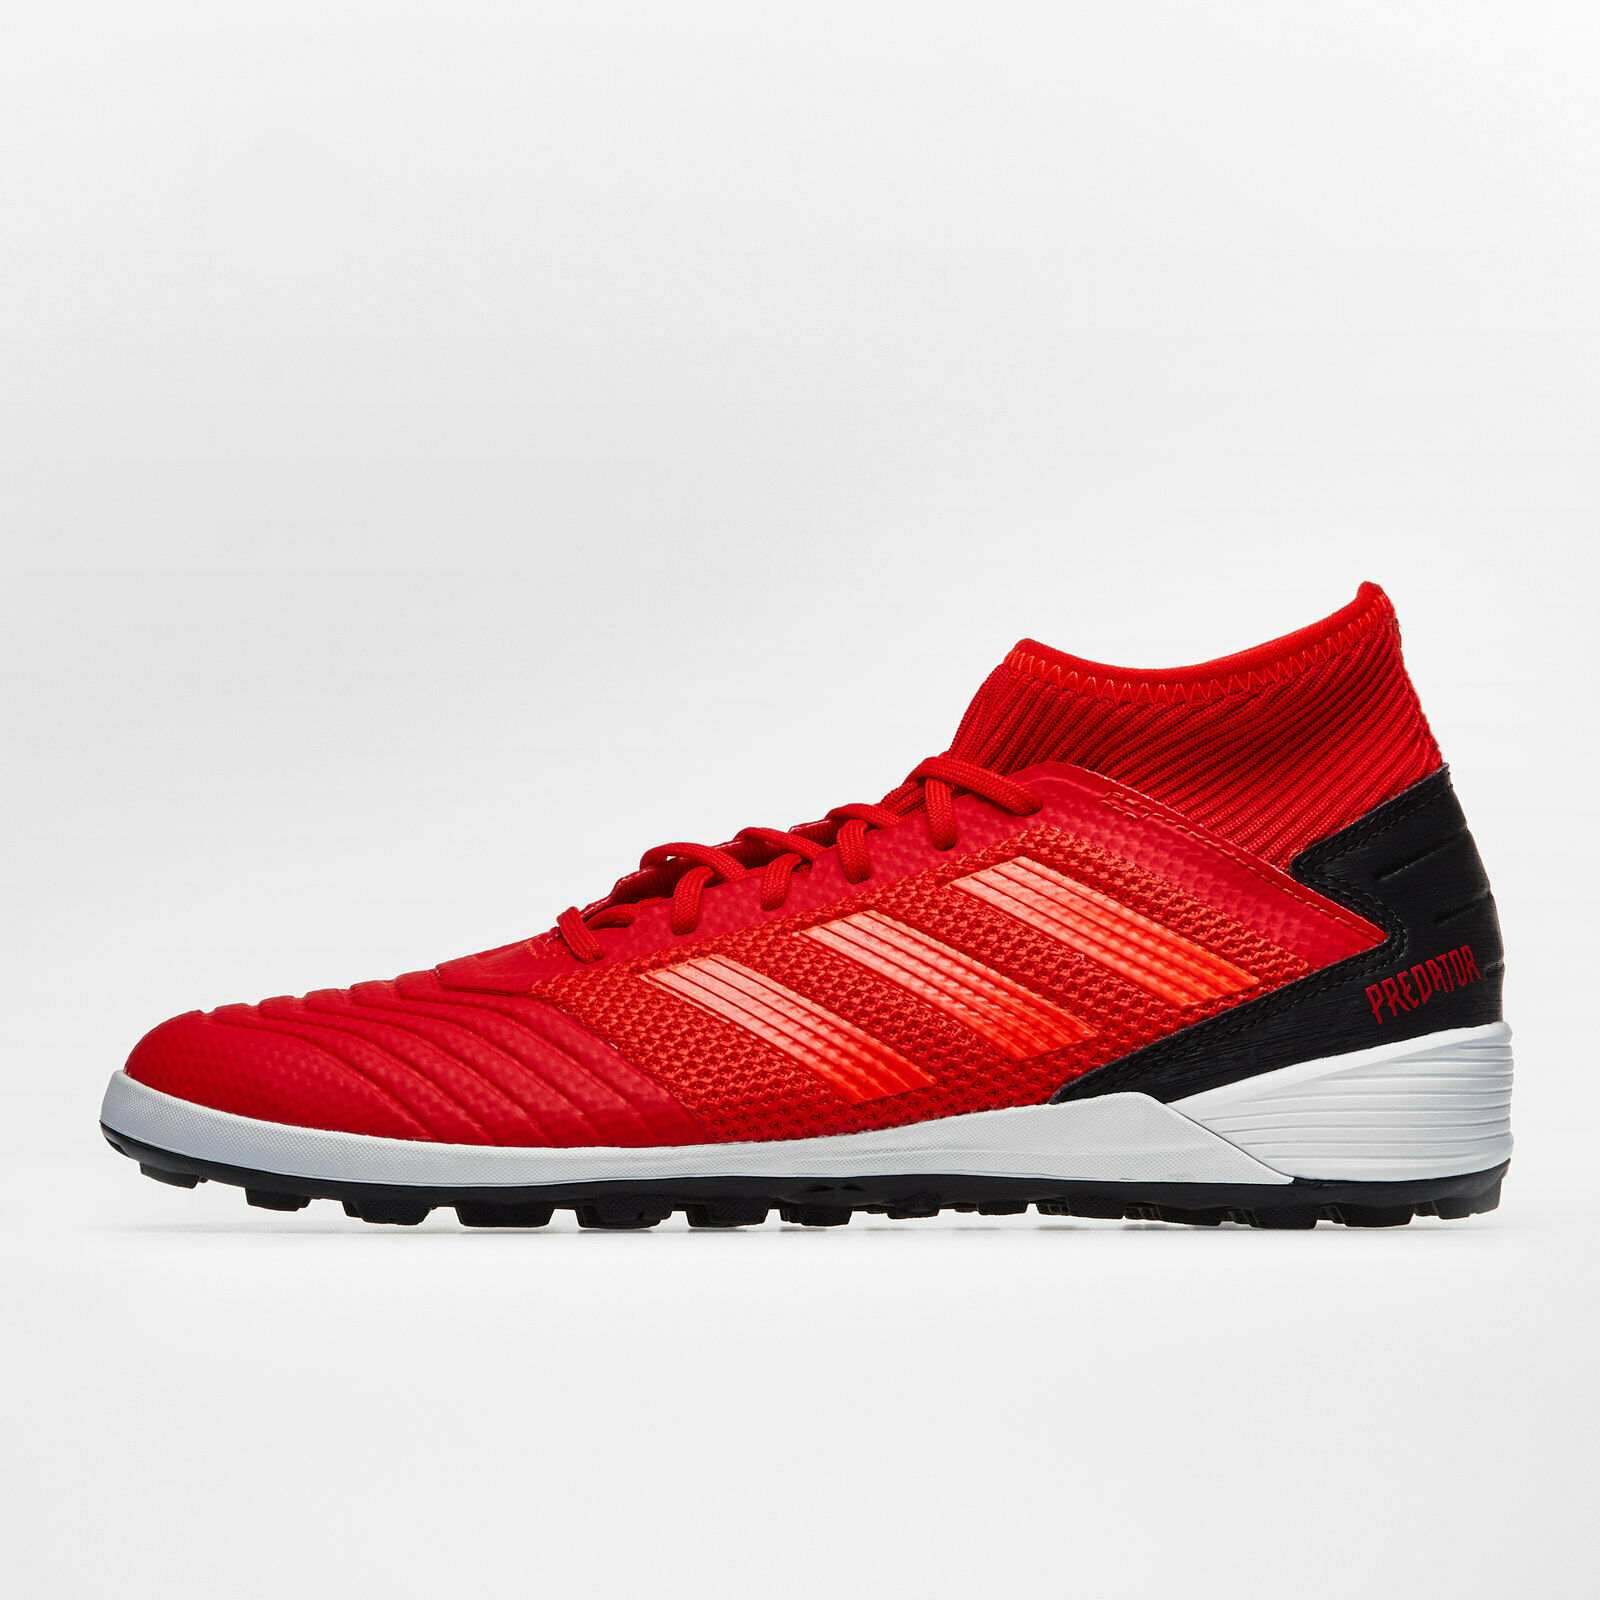 Adidas Mens Predator 19.3 Turf Football Boots Studs Trainers Sports shoes Red